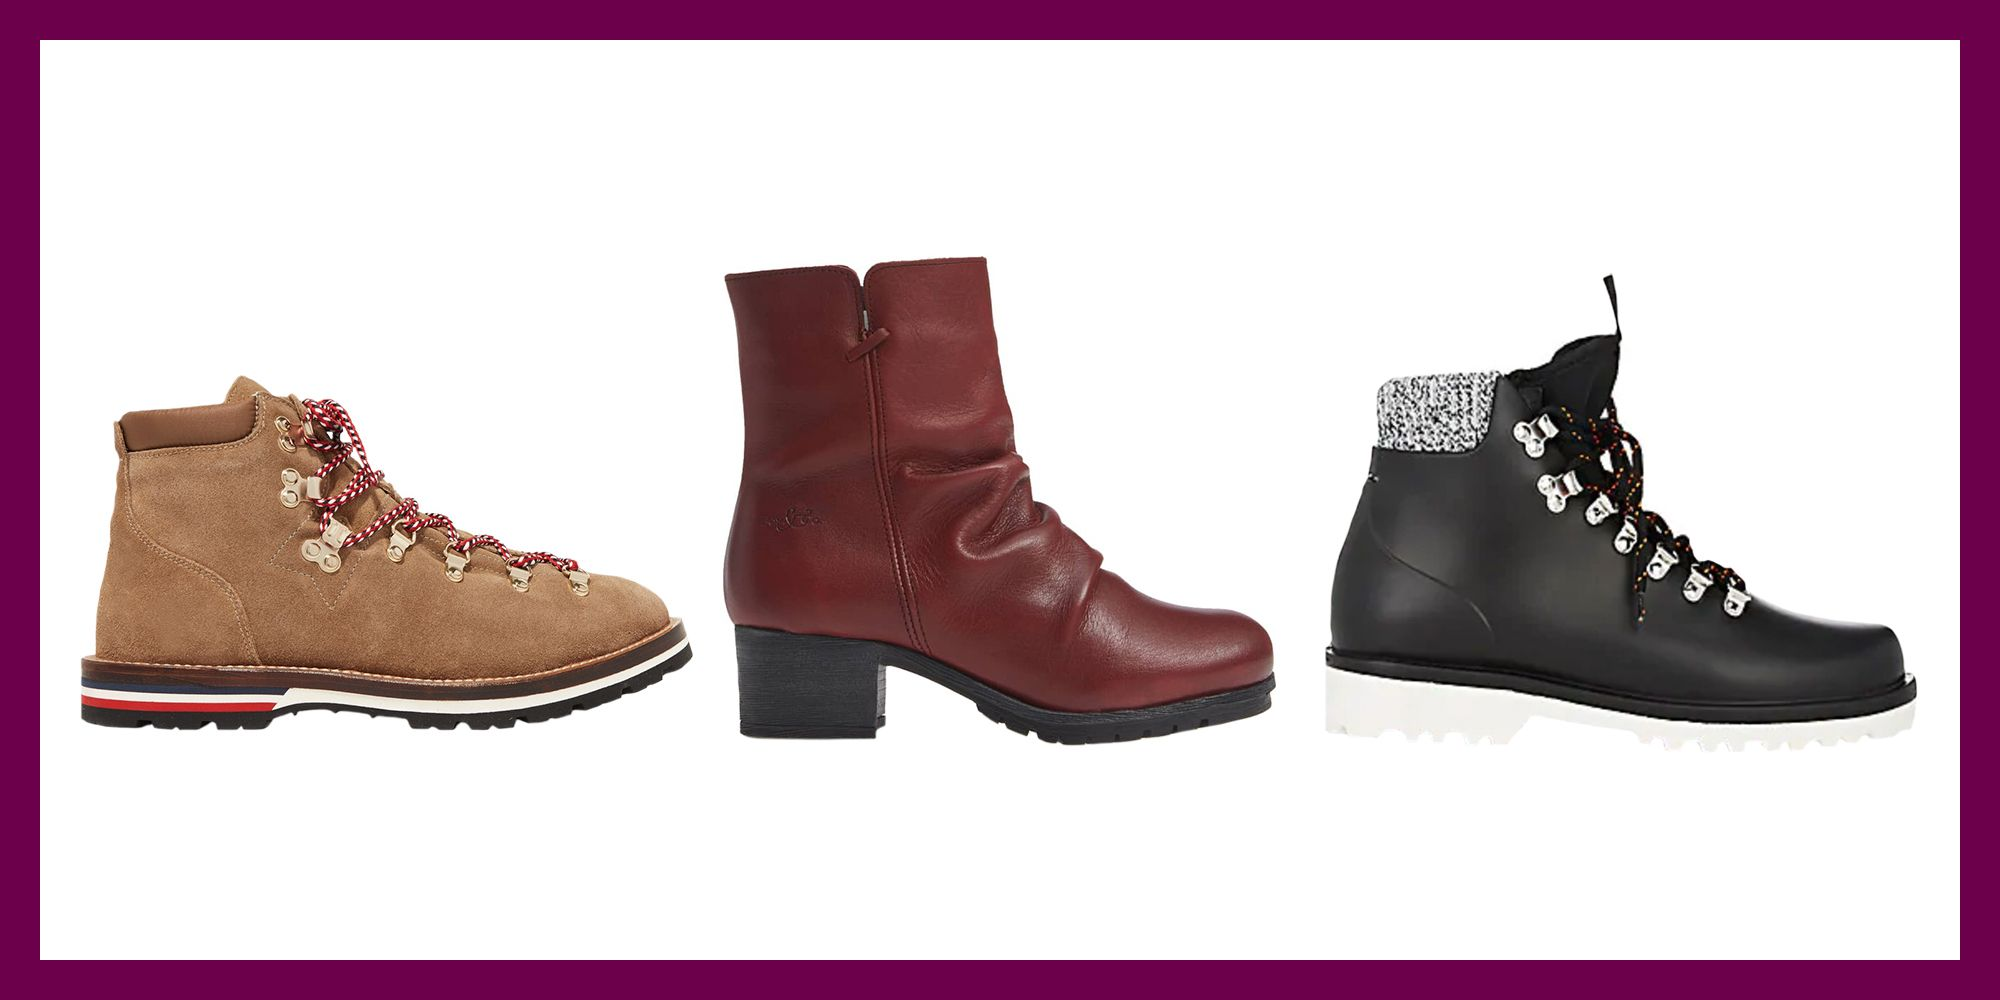 15 Snow Boots You'll Actually Want to Wear This Winter